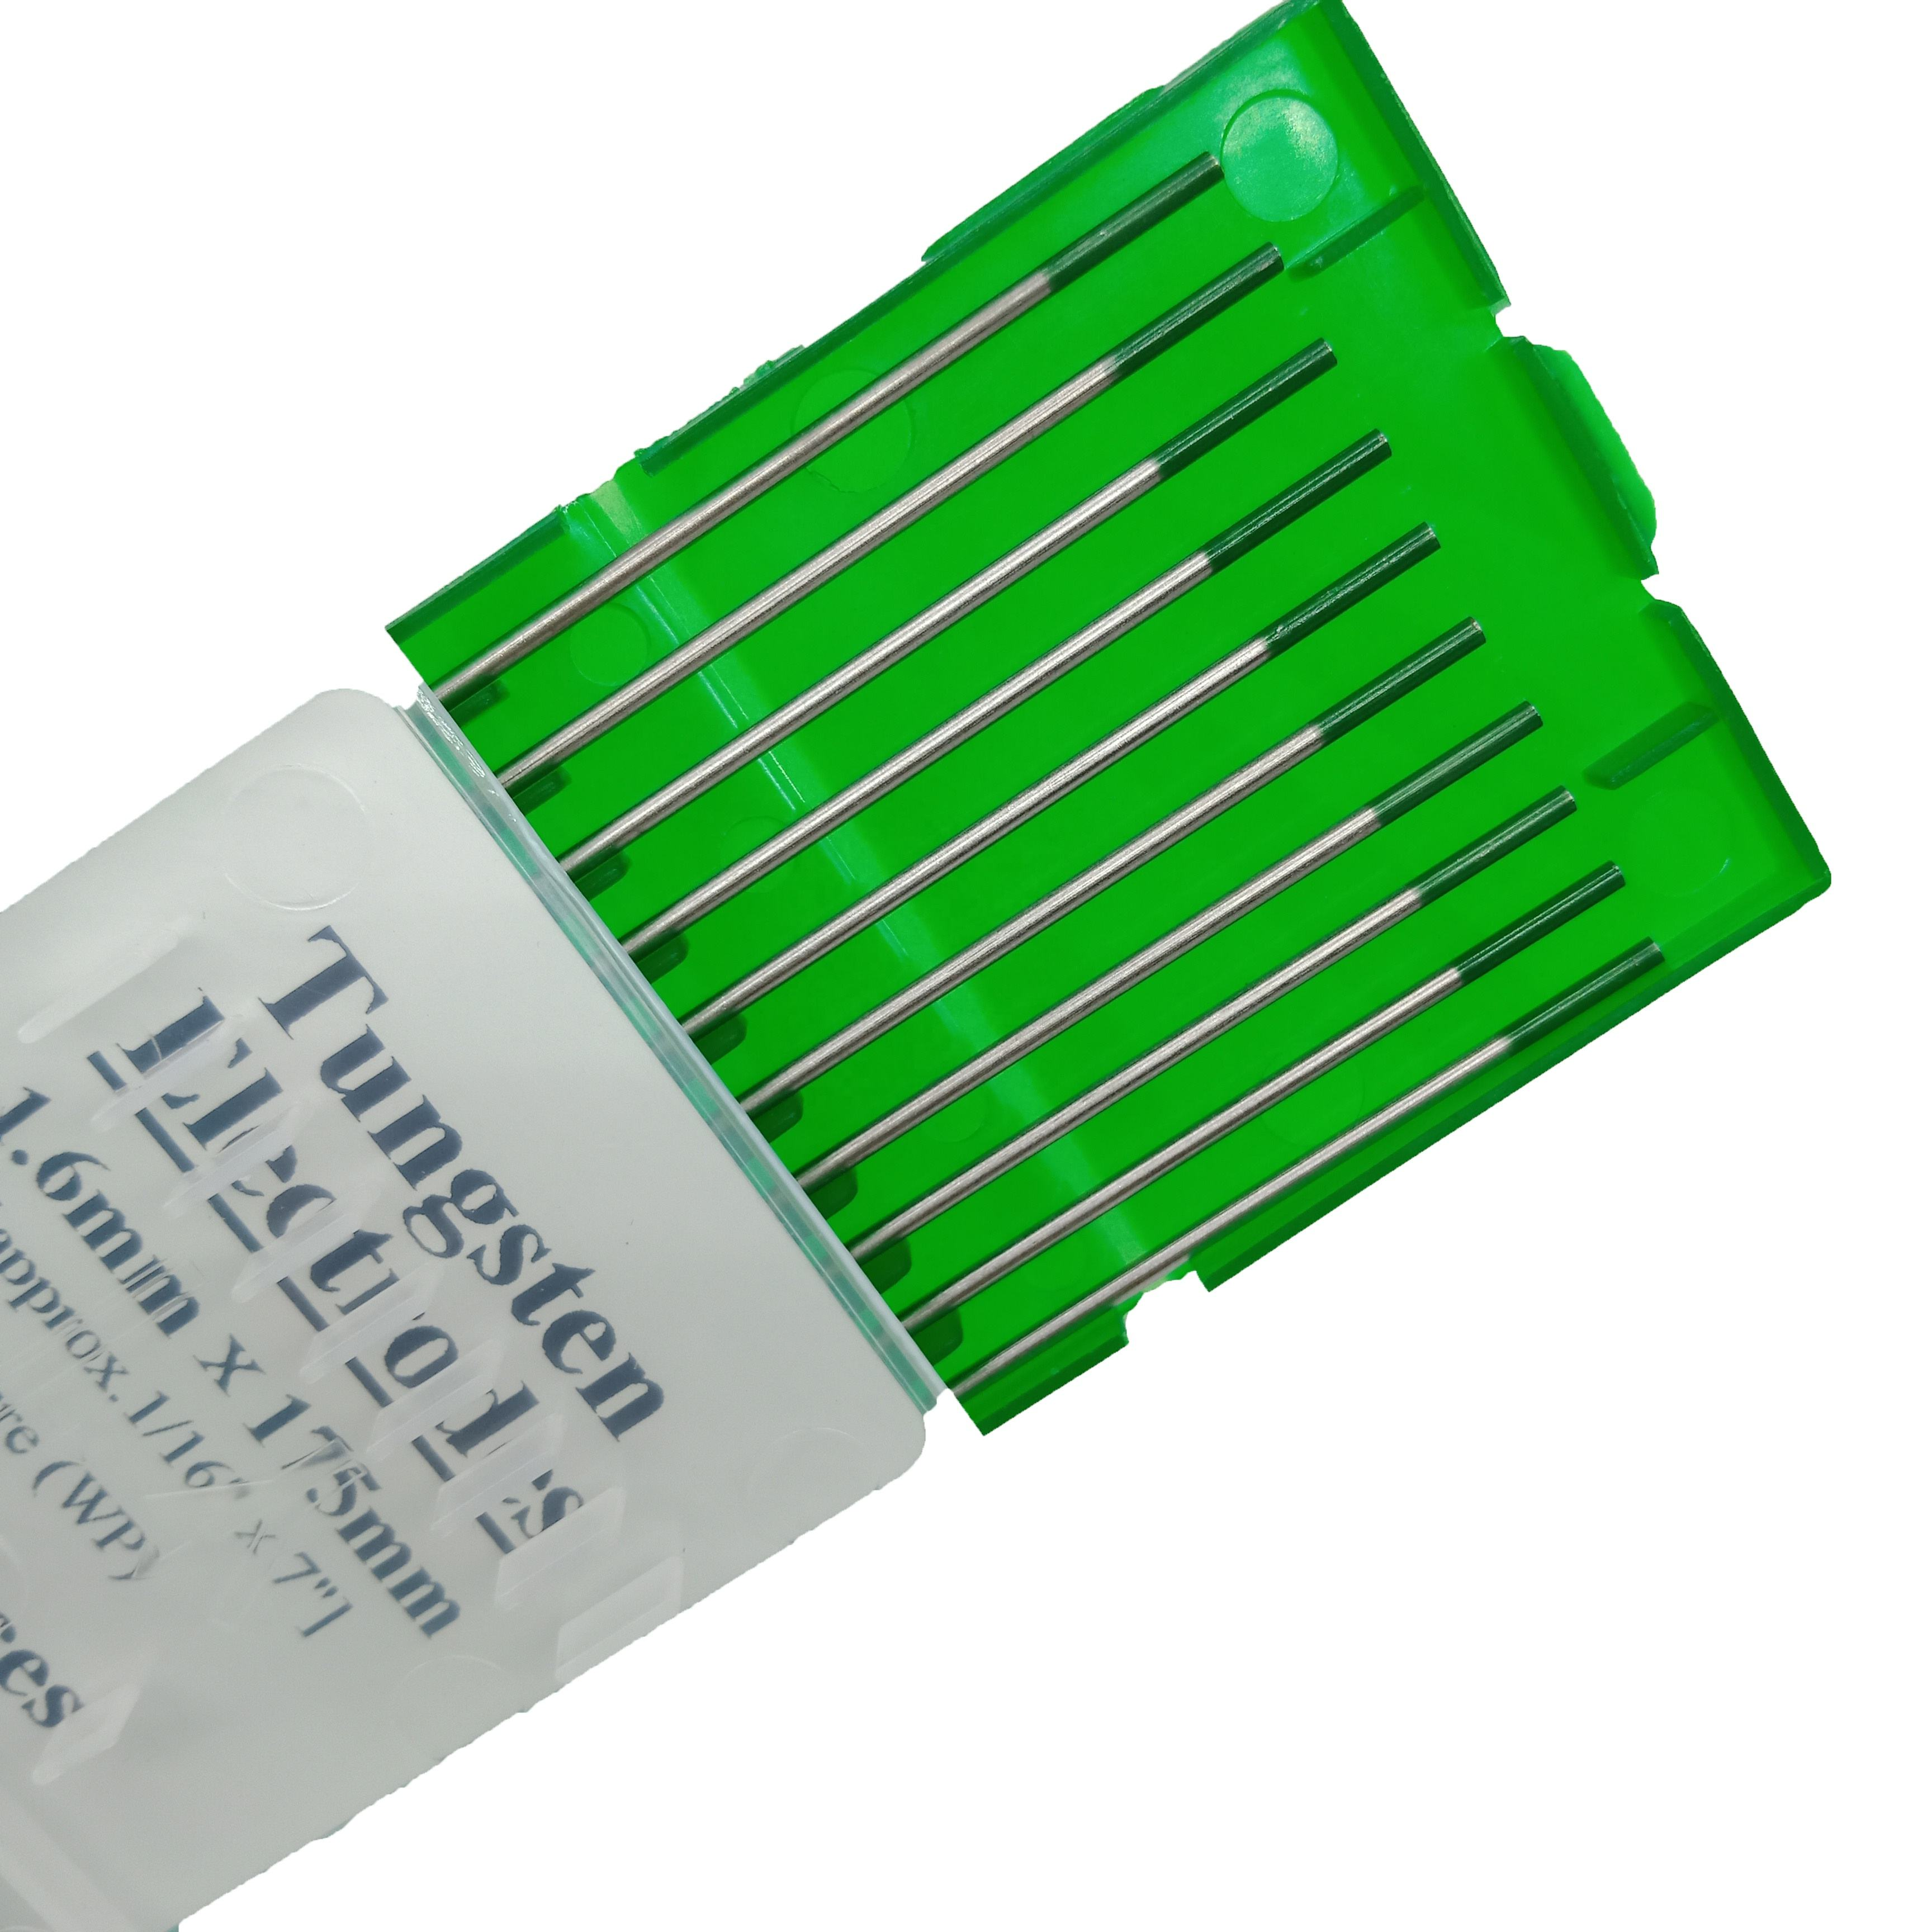 Green Tip WP 3.2mm*175mm Tig Welding Electrodes Tungsten